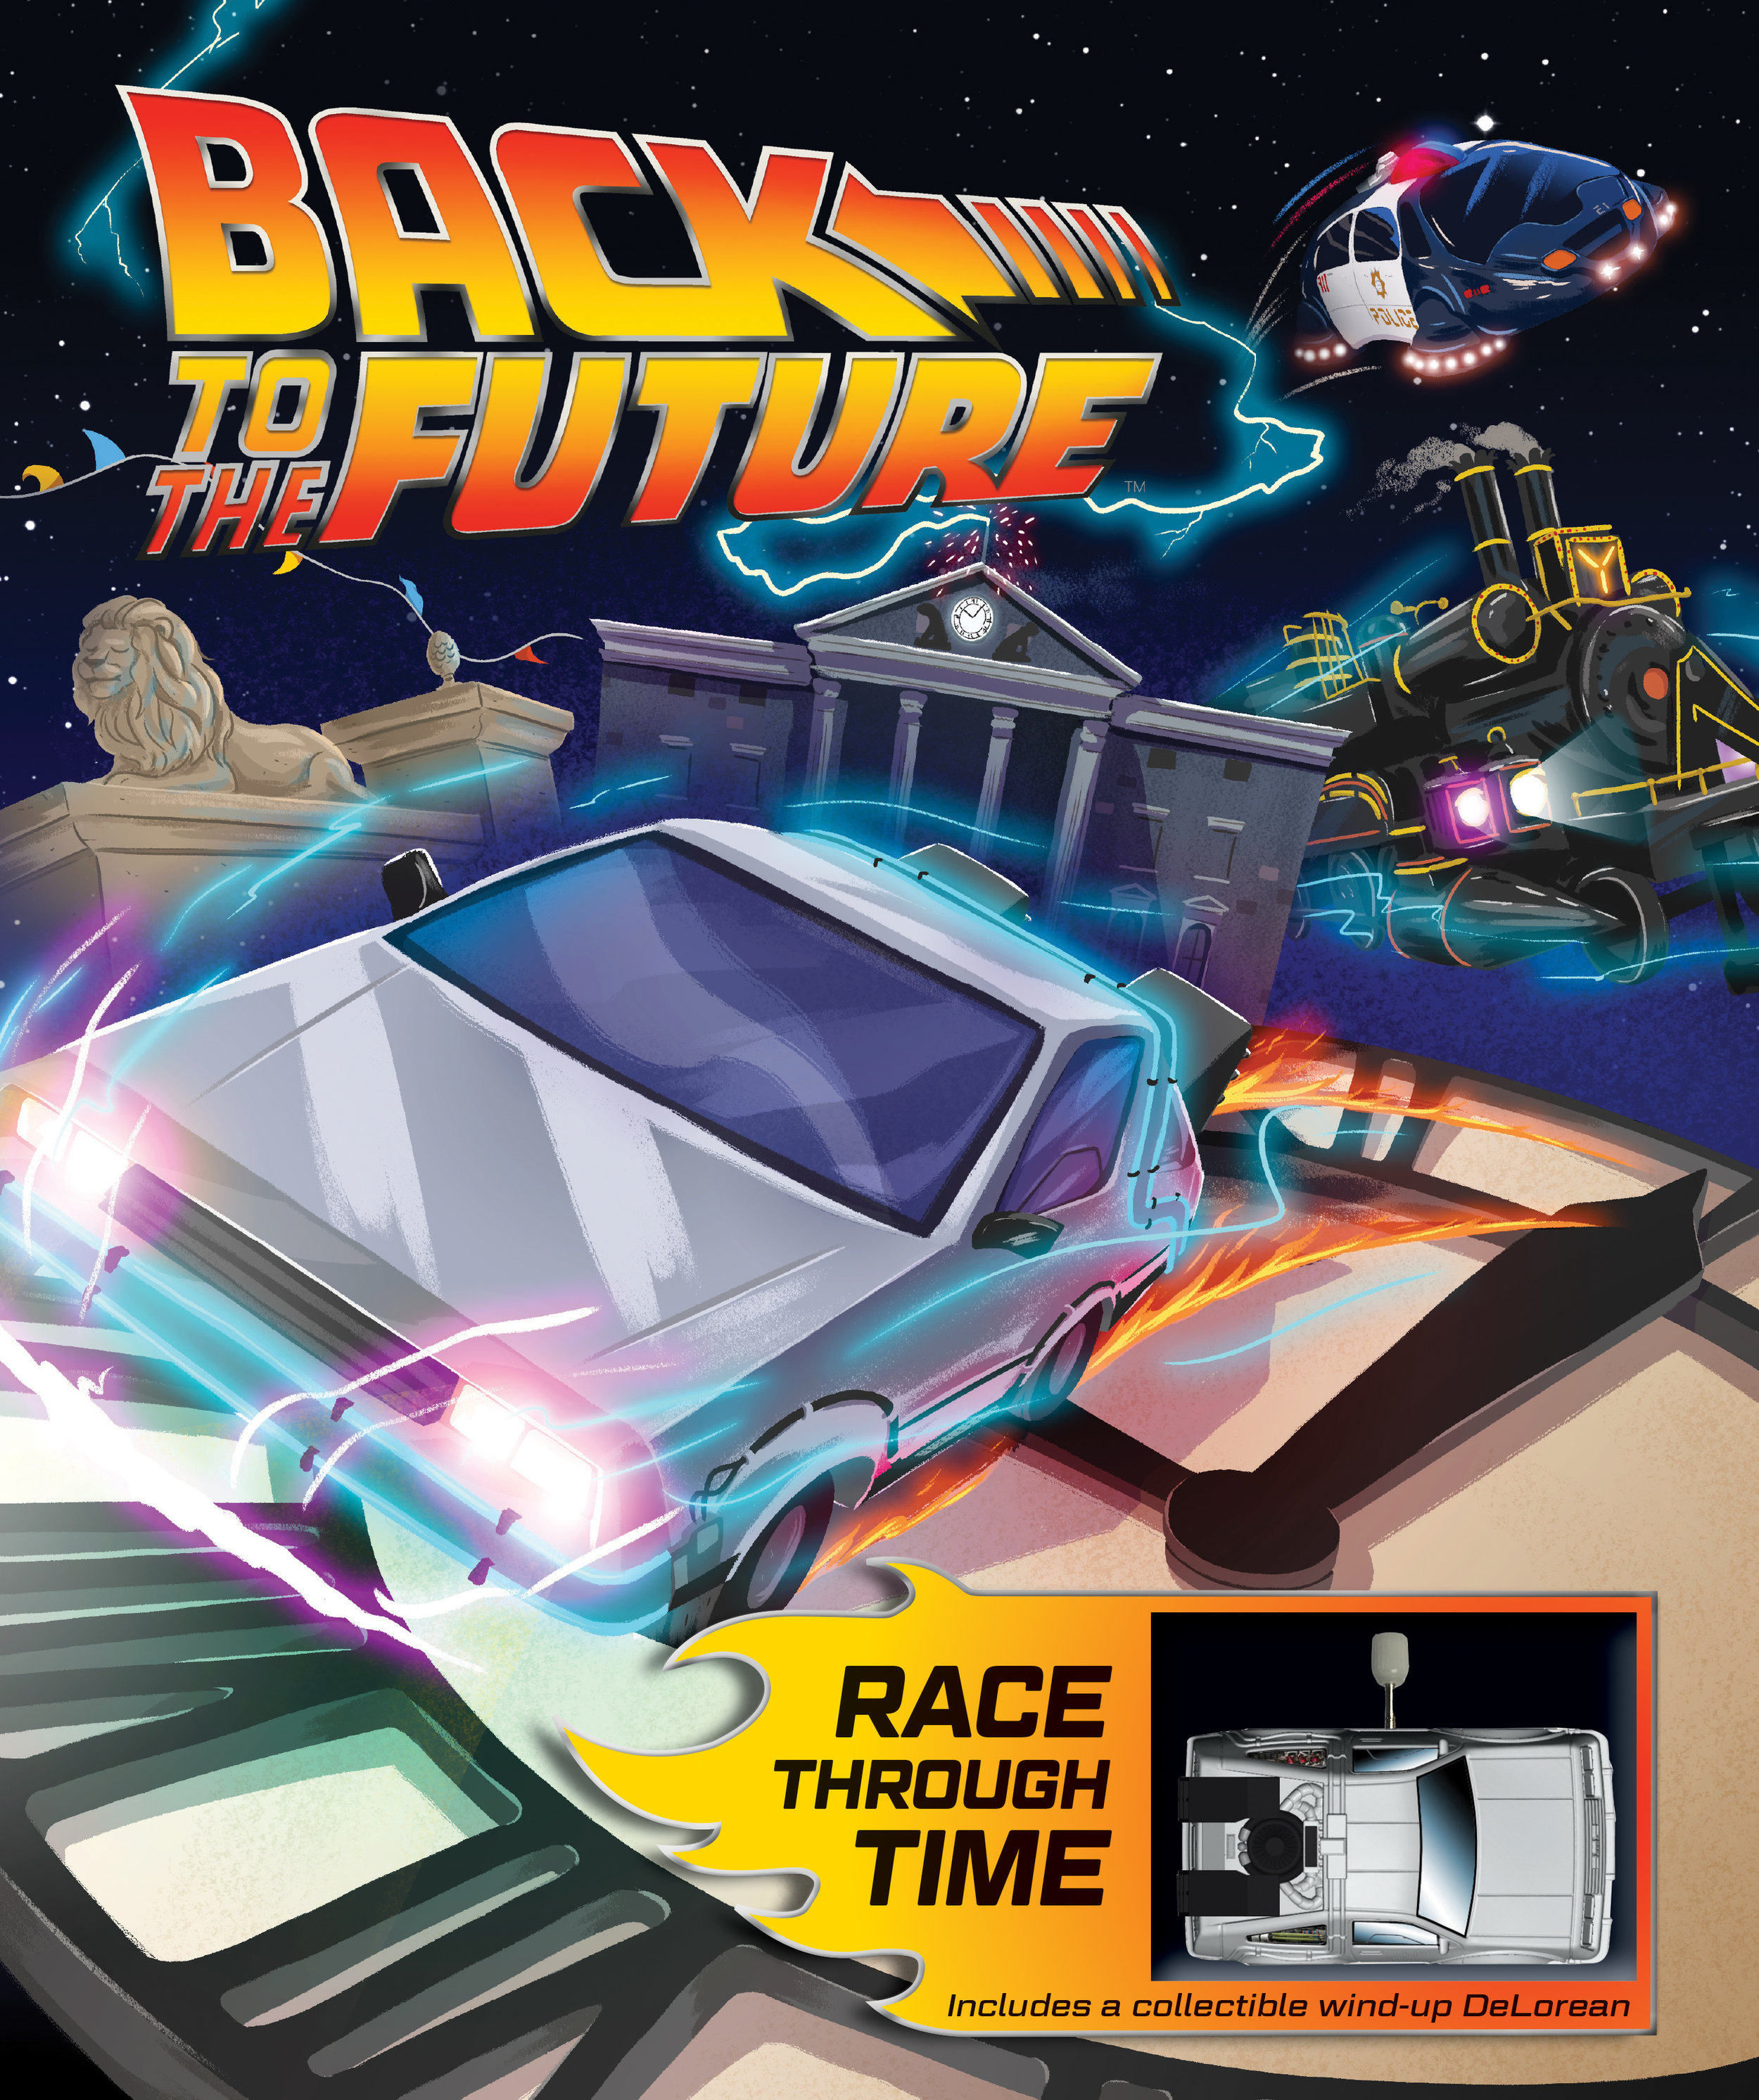 Back to the Future Race Through Time COVER.jpg